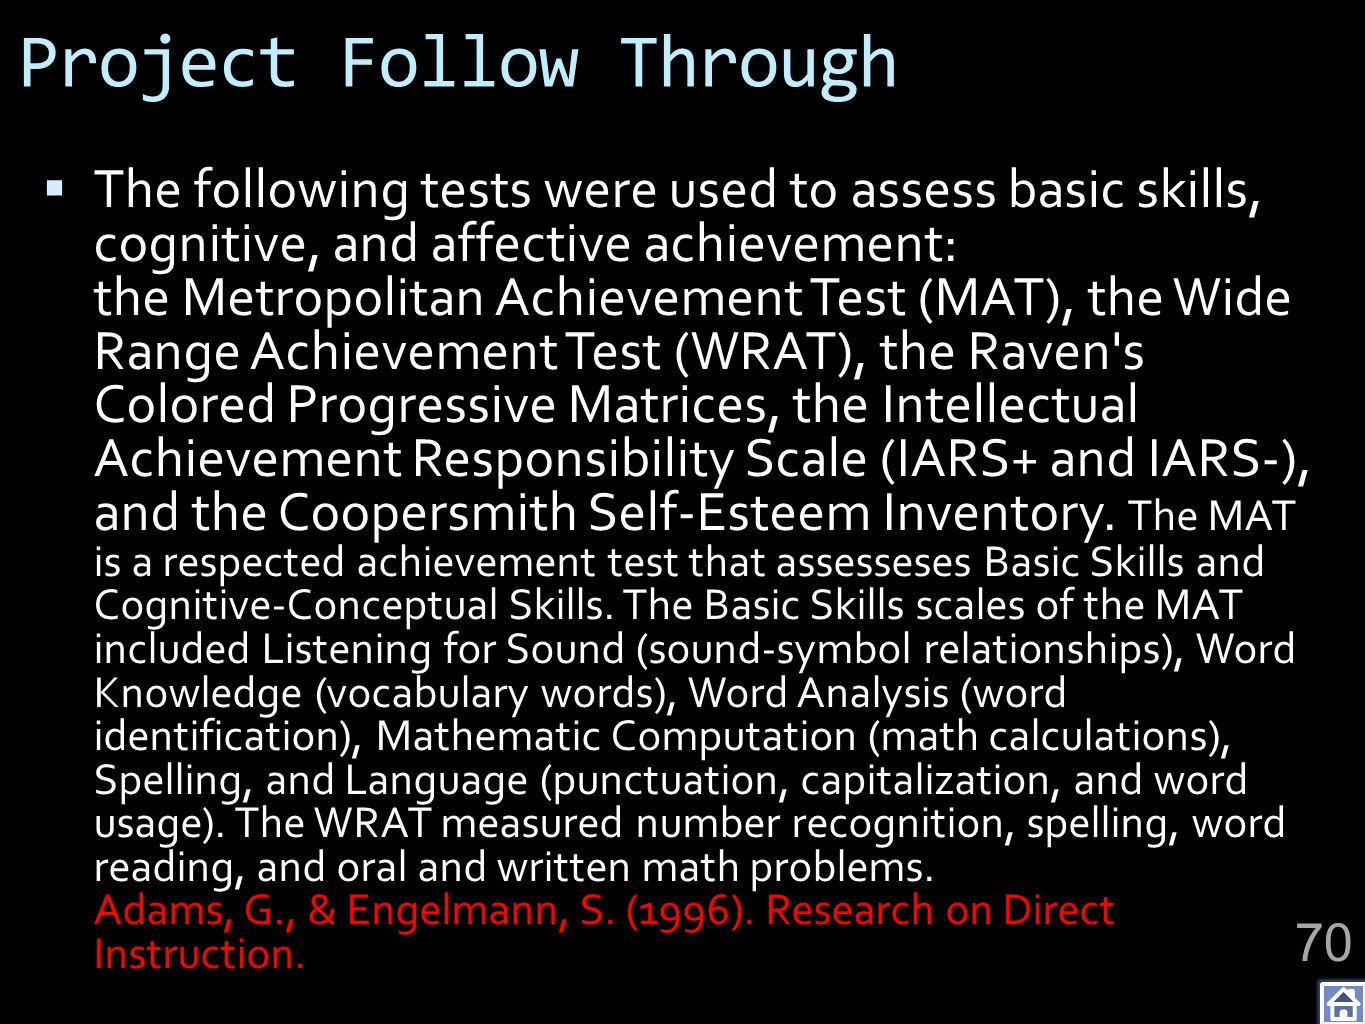 Project Follow Through The following tests were used to assess basic skills, cognitive, and affective achievement: the Metropolitan Achievement Test (